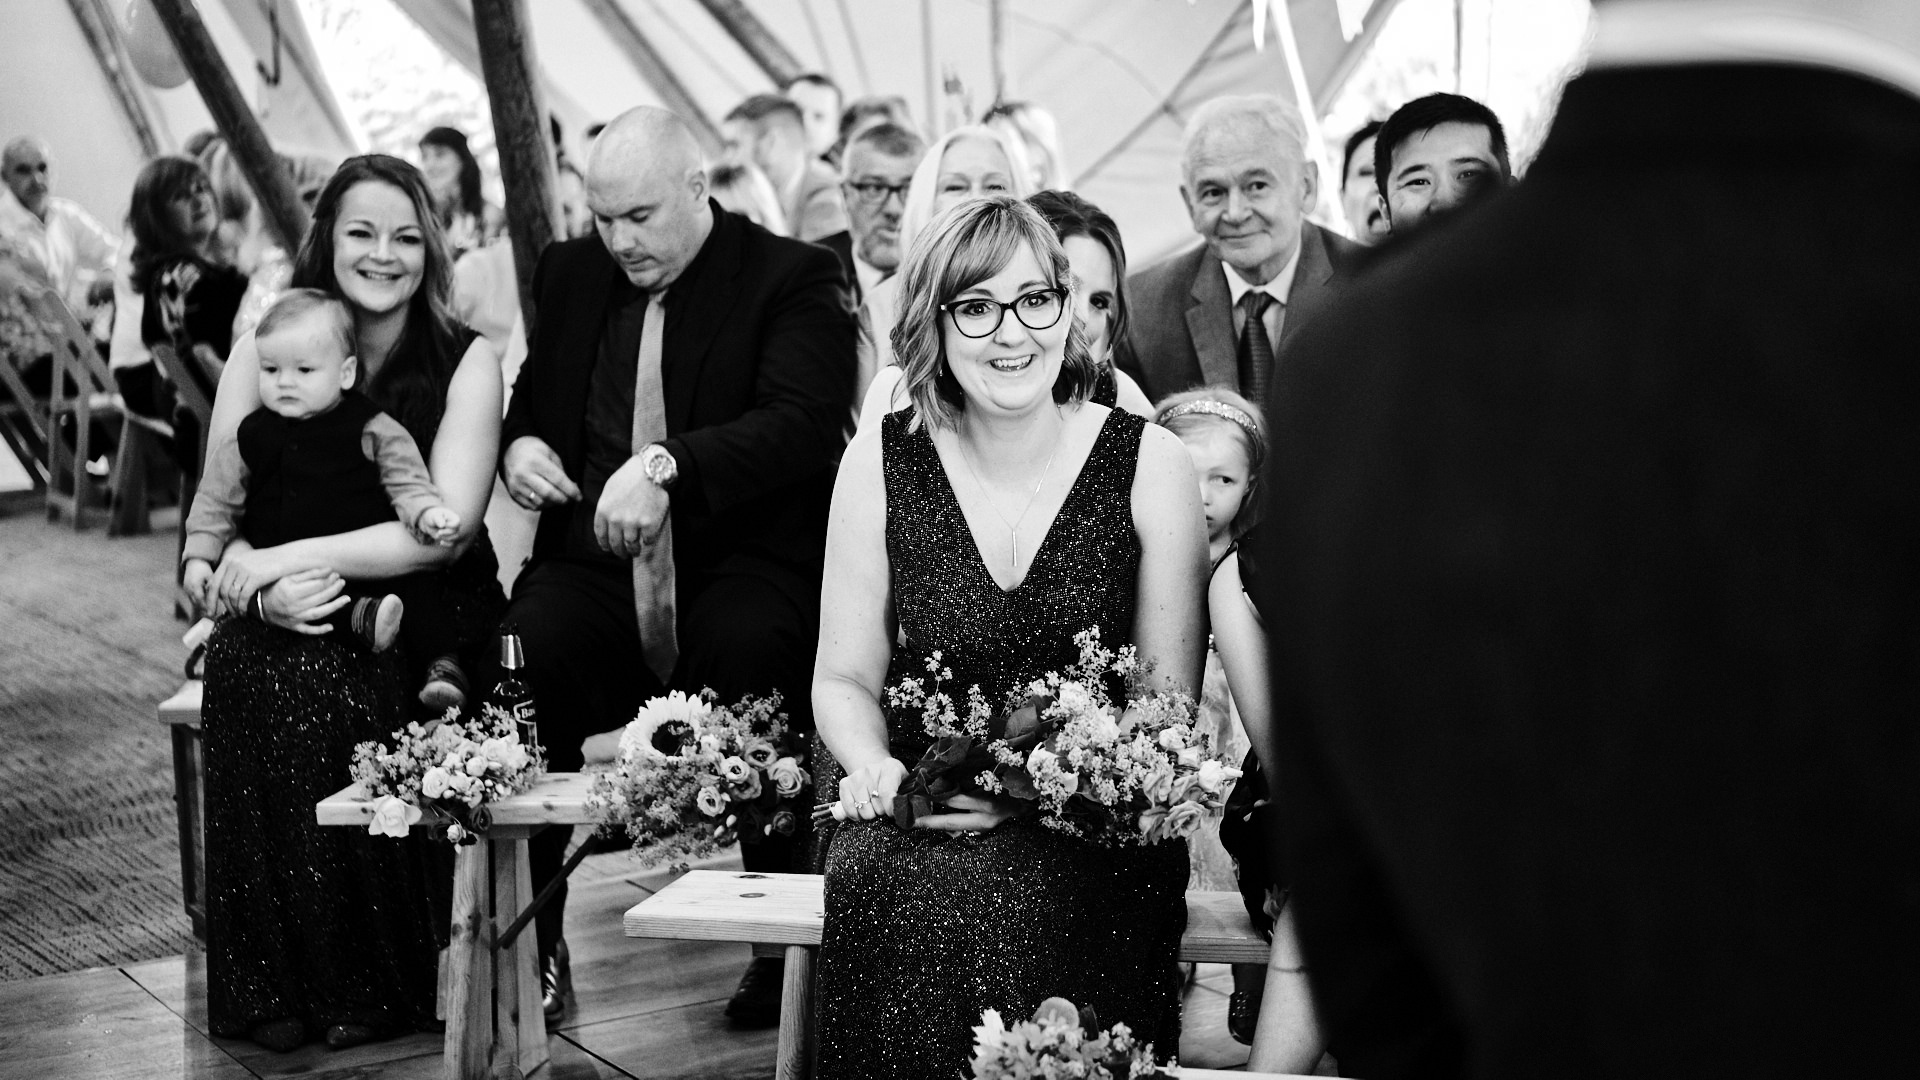 black and white photograph of a bridesmaid and guests smiling during a wedding ceremony